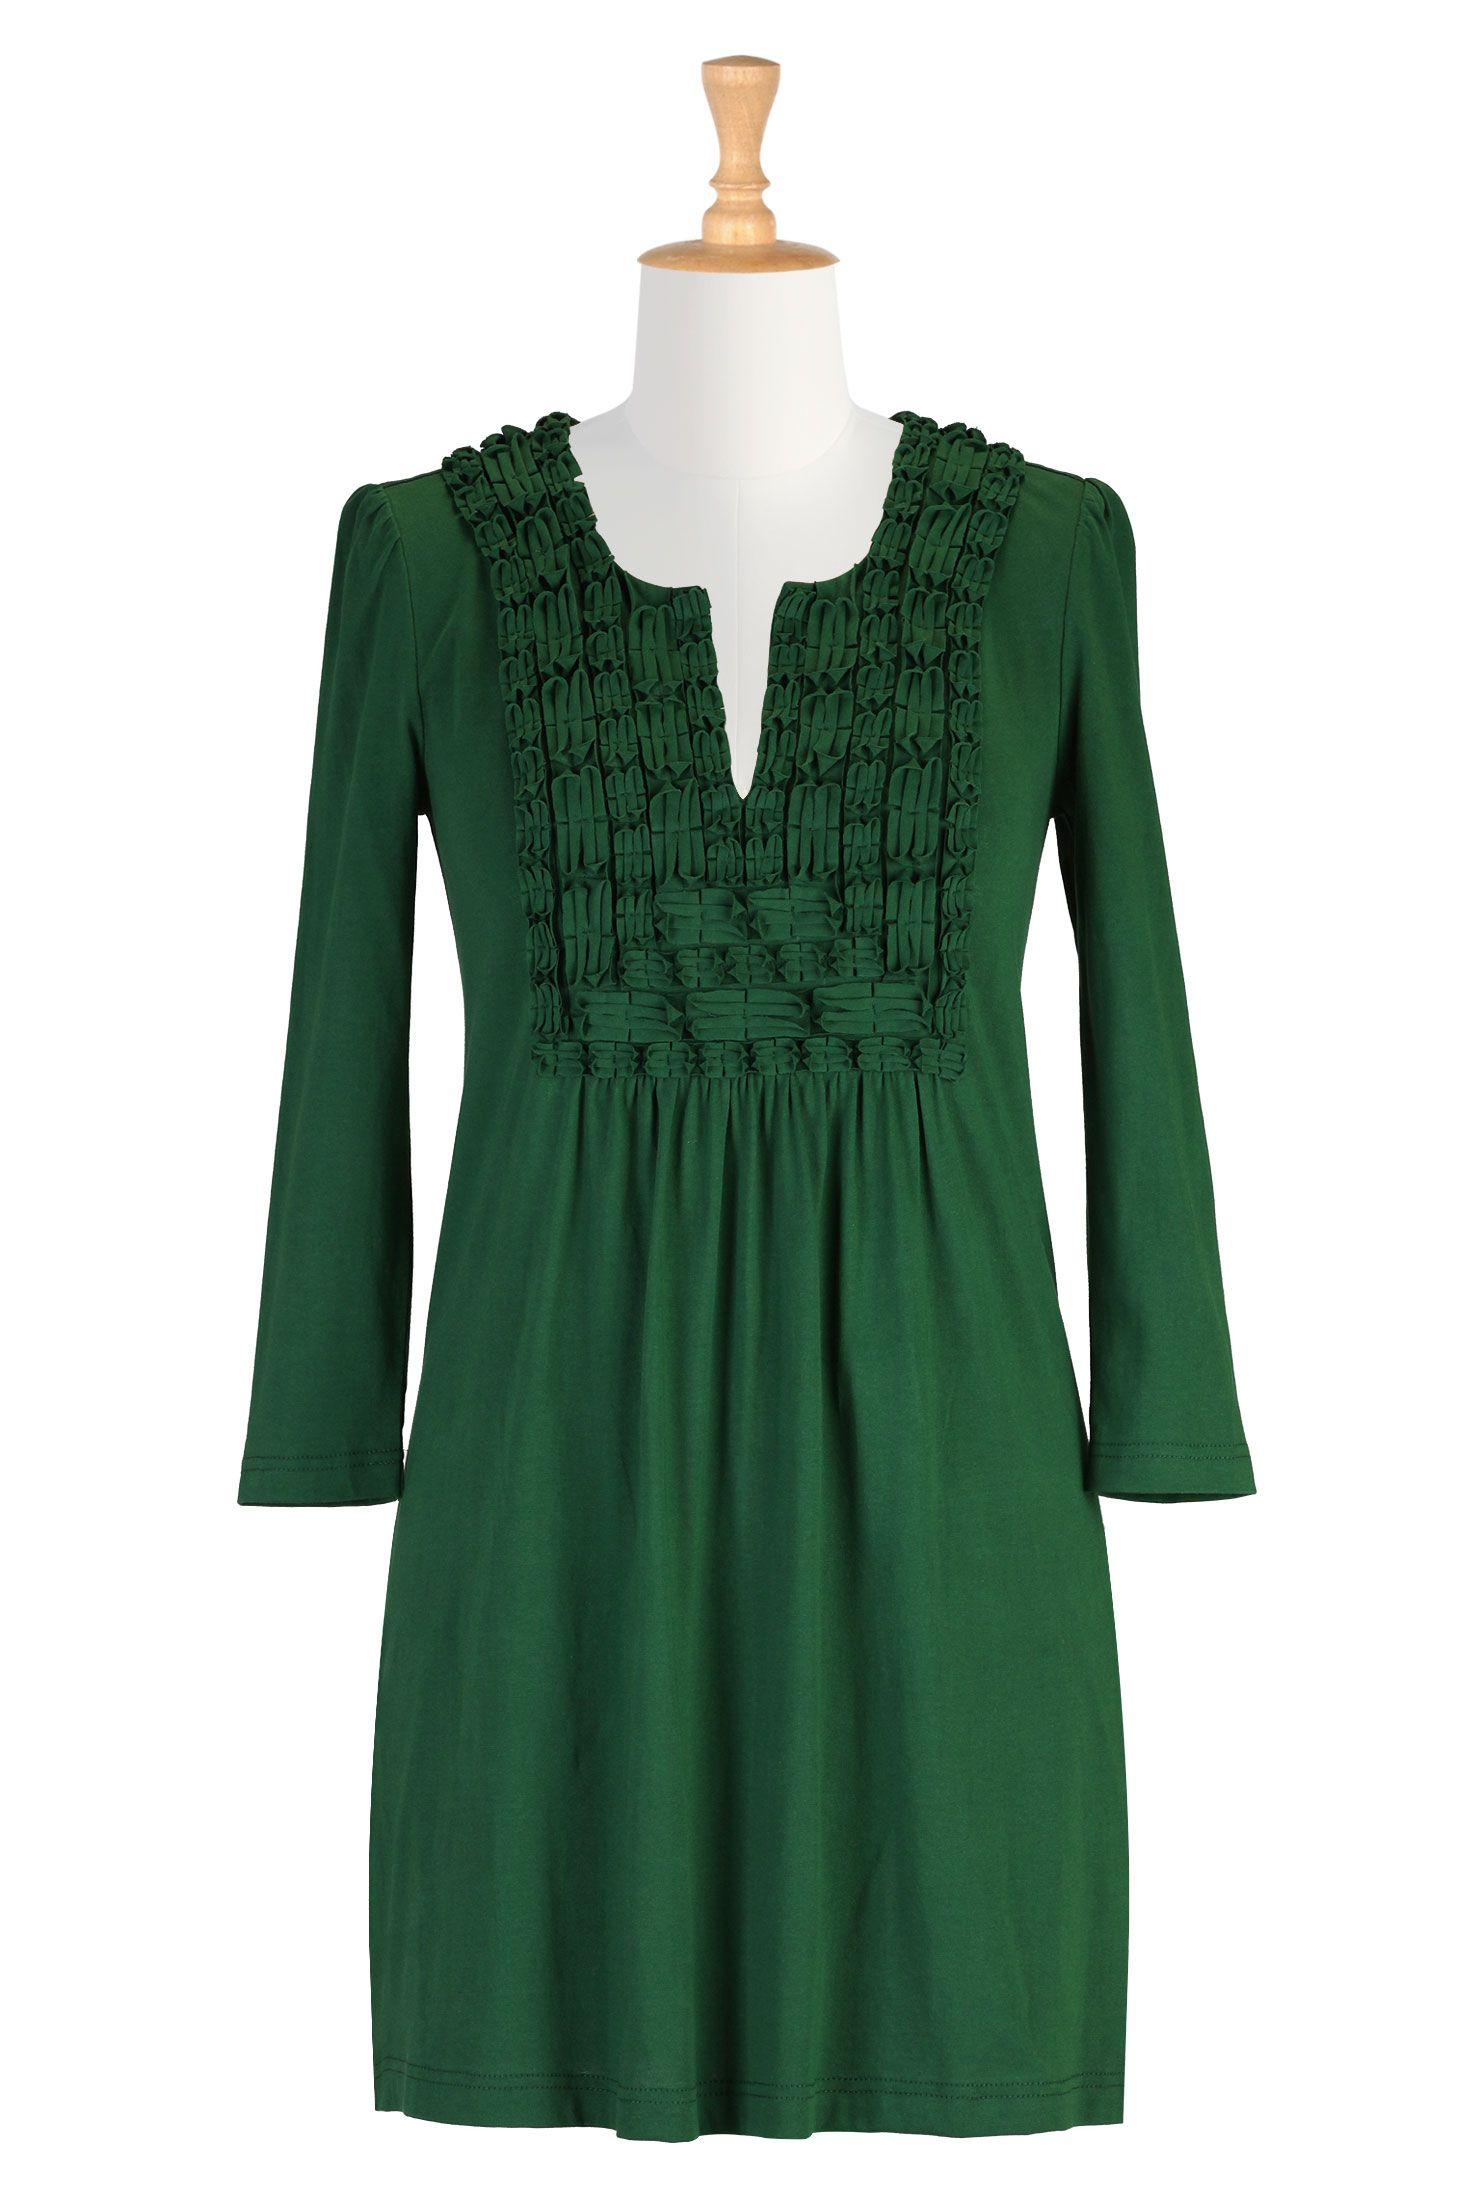 0239e49f11f4 Summer Clothes For Women